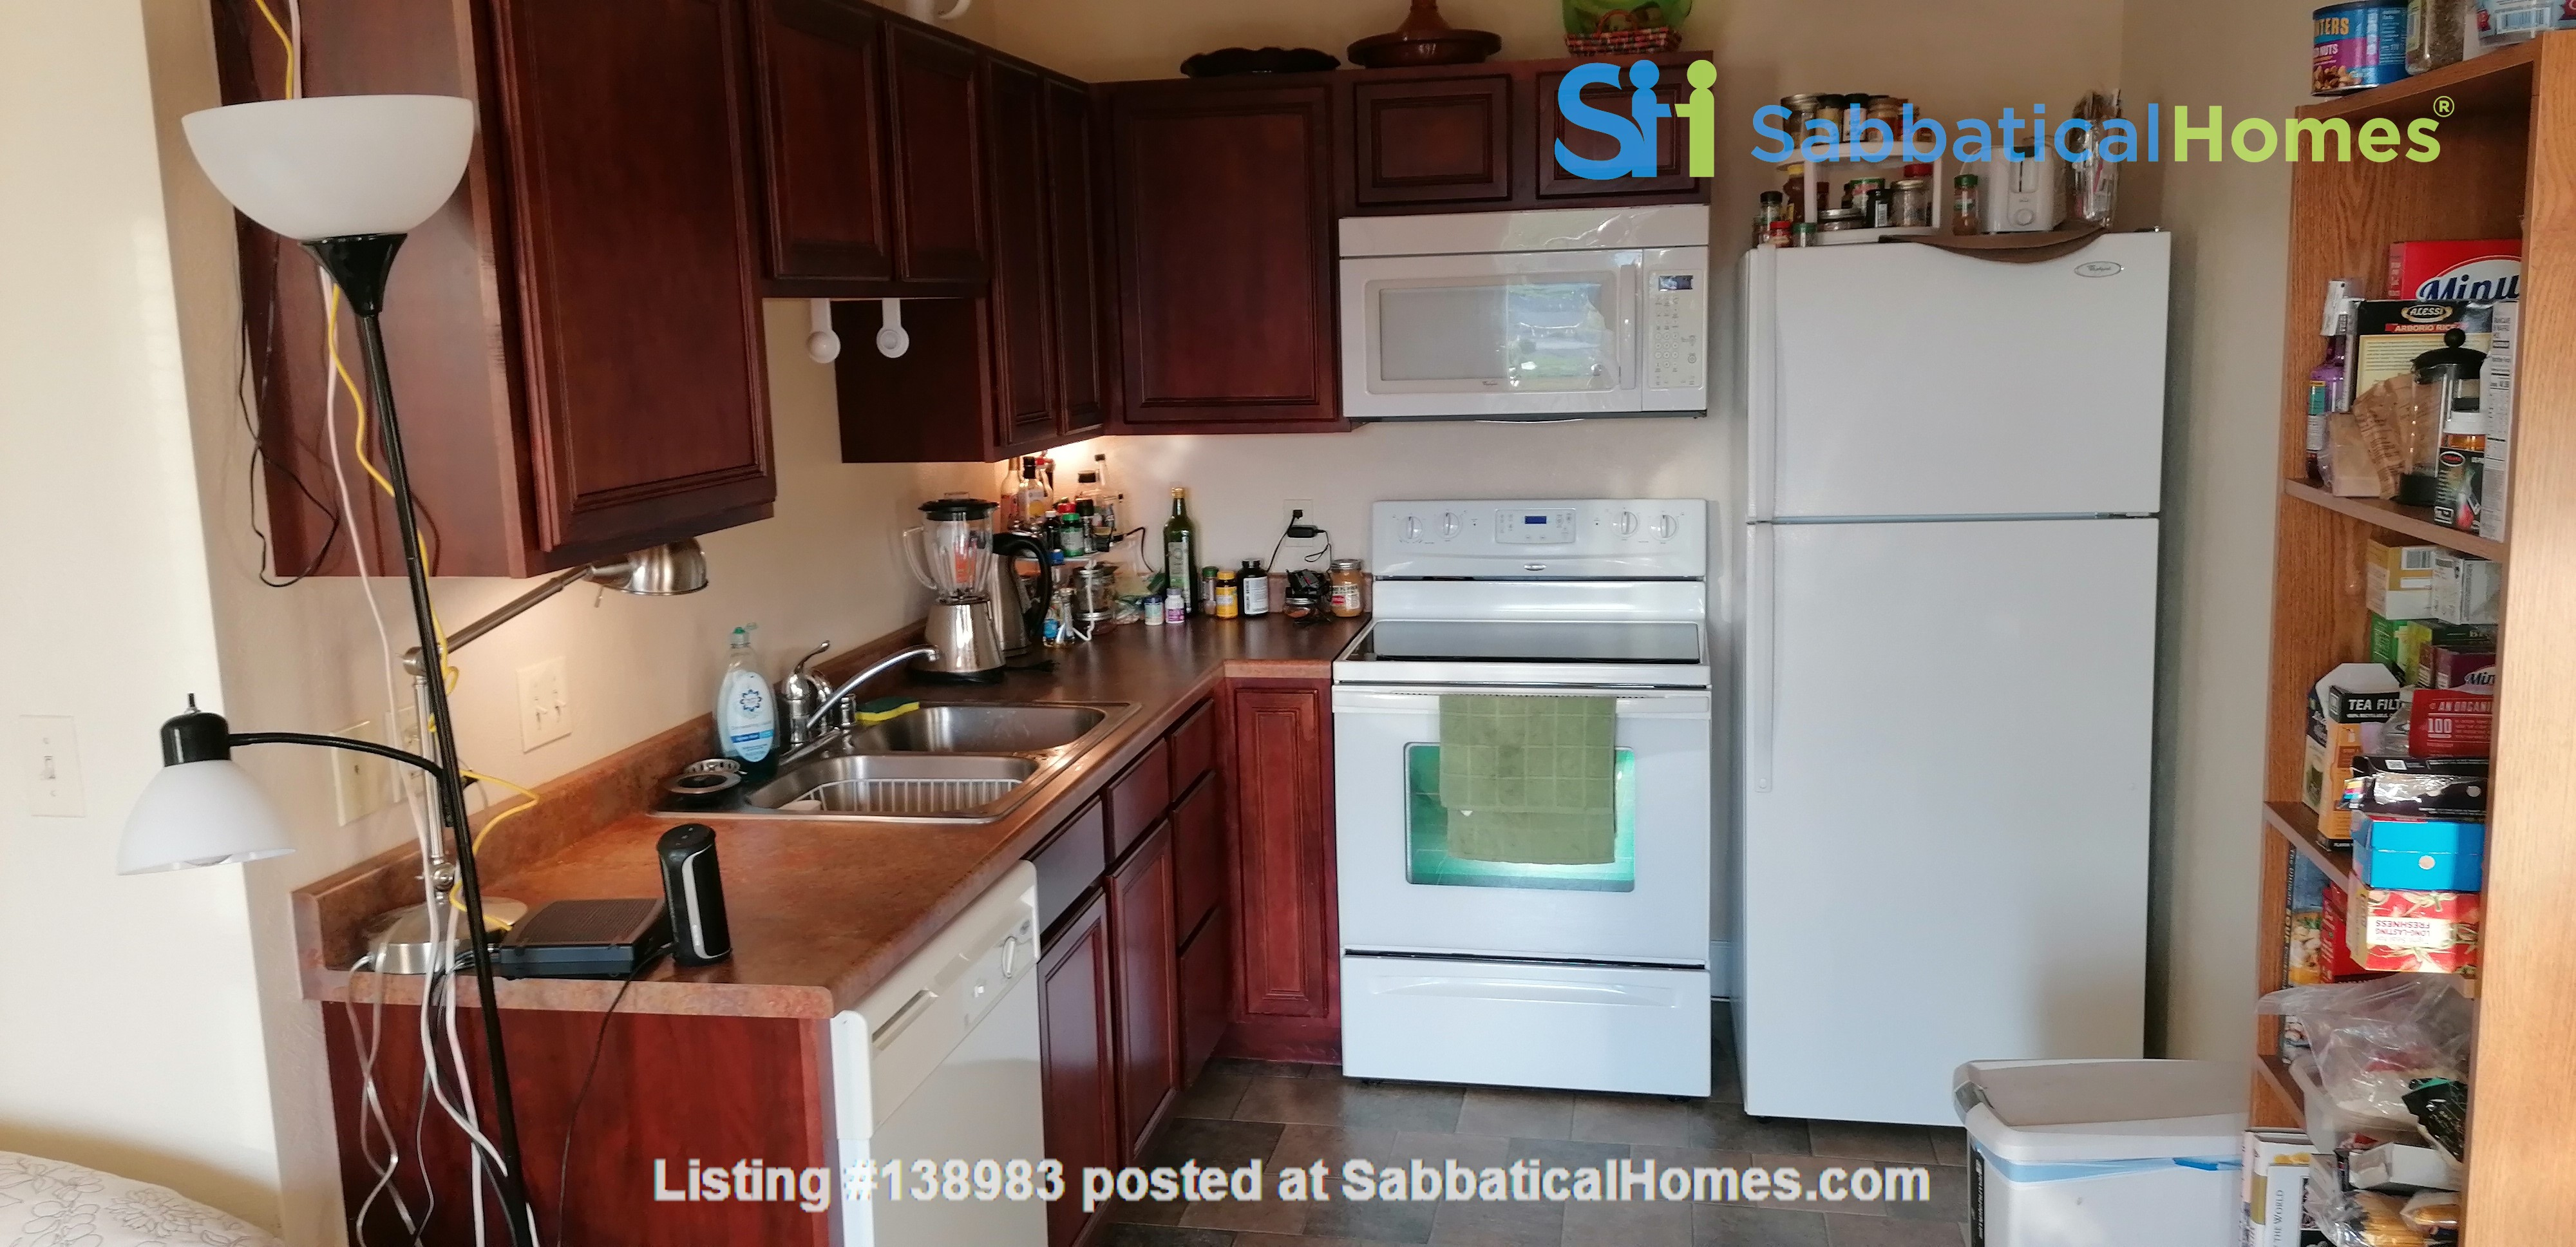 Spacious one bedroom/studio  apartment in Missoula, MT Home Rental in Missoula, Montana, United States 4